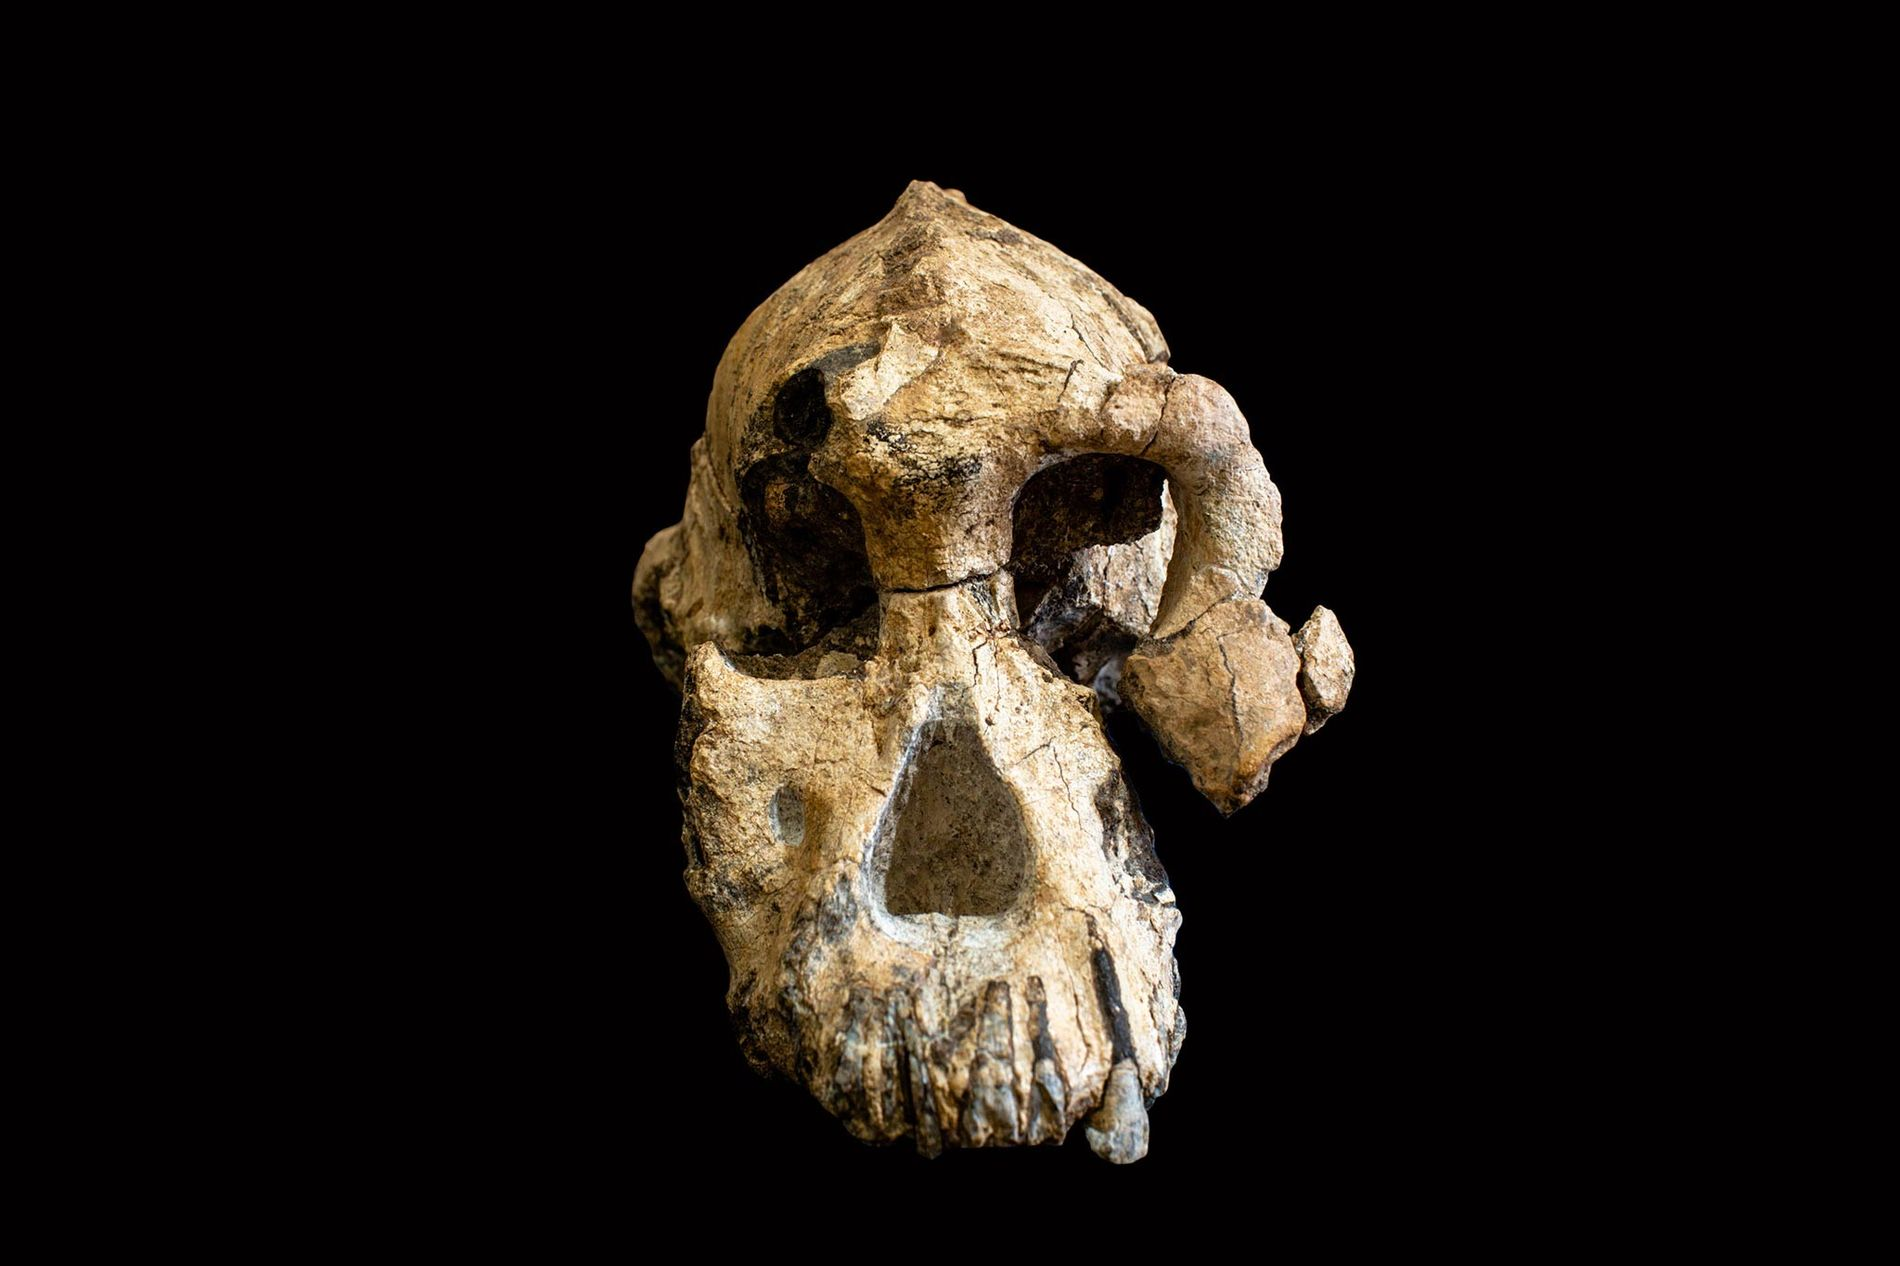 Formally designated MRD-VP-1/1, this newfound skull belongs to an early human ancestor called 'Australopithecus anamensis'.